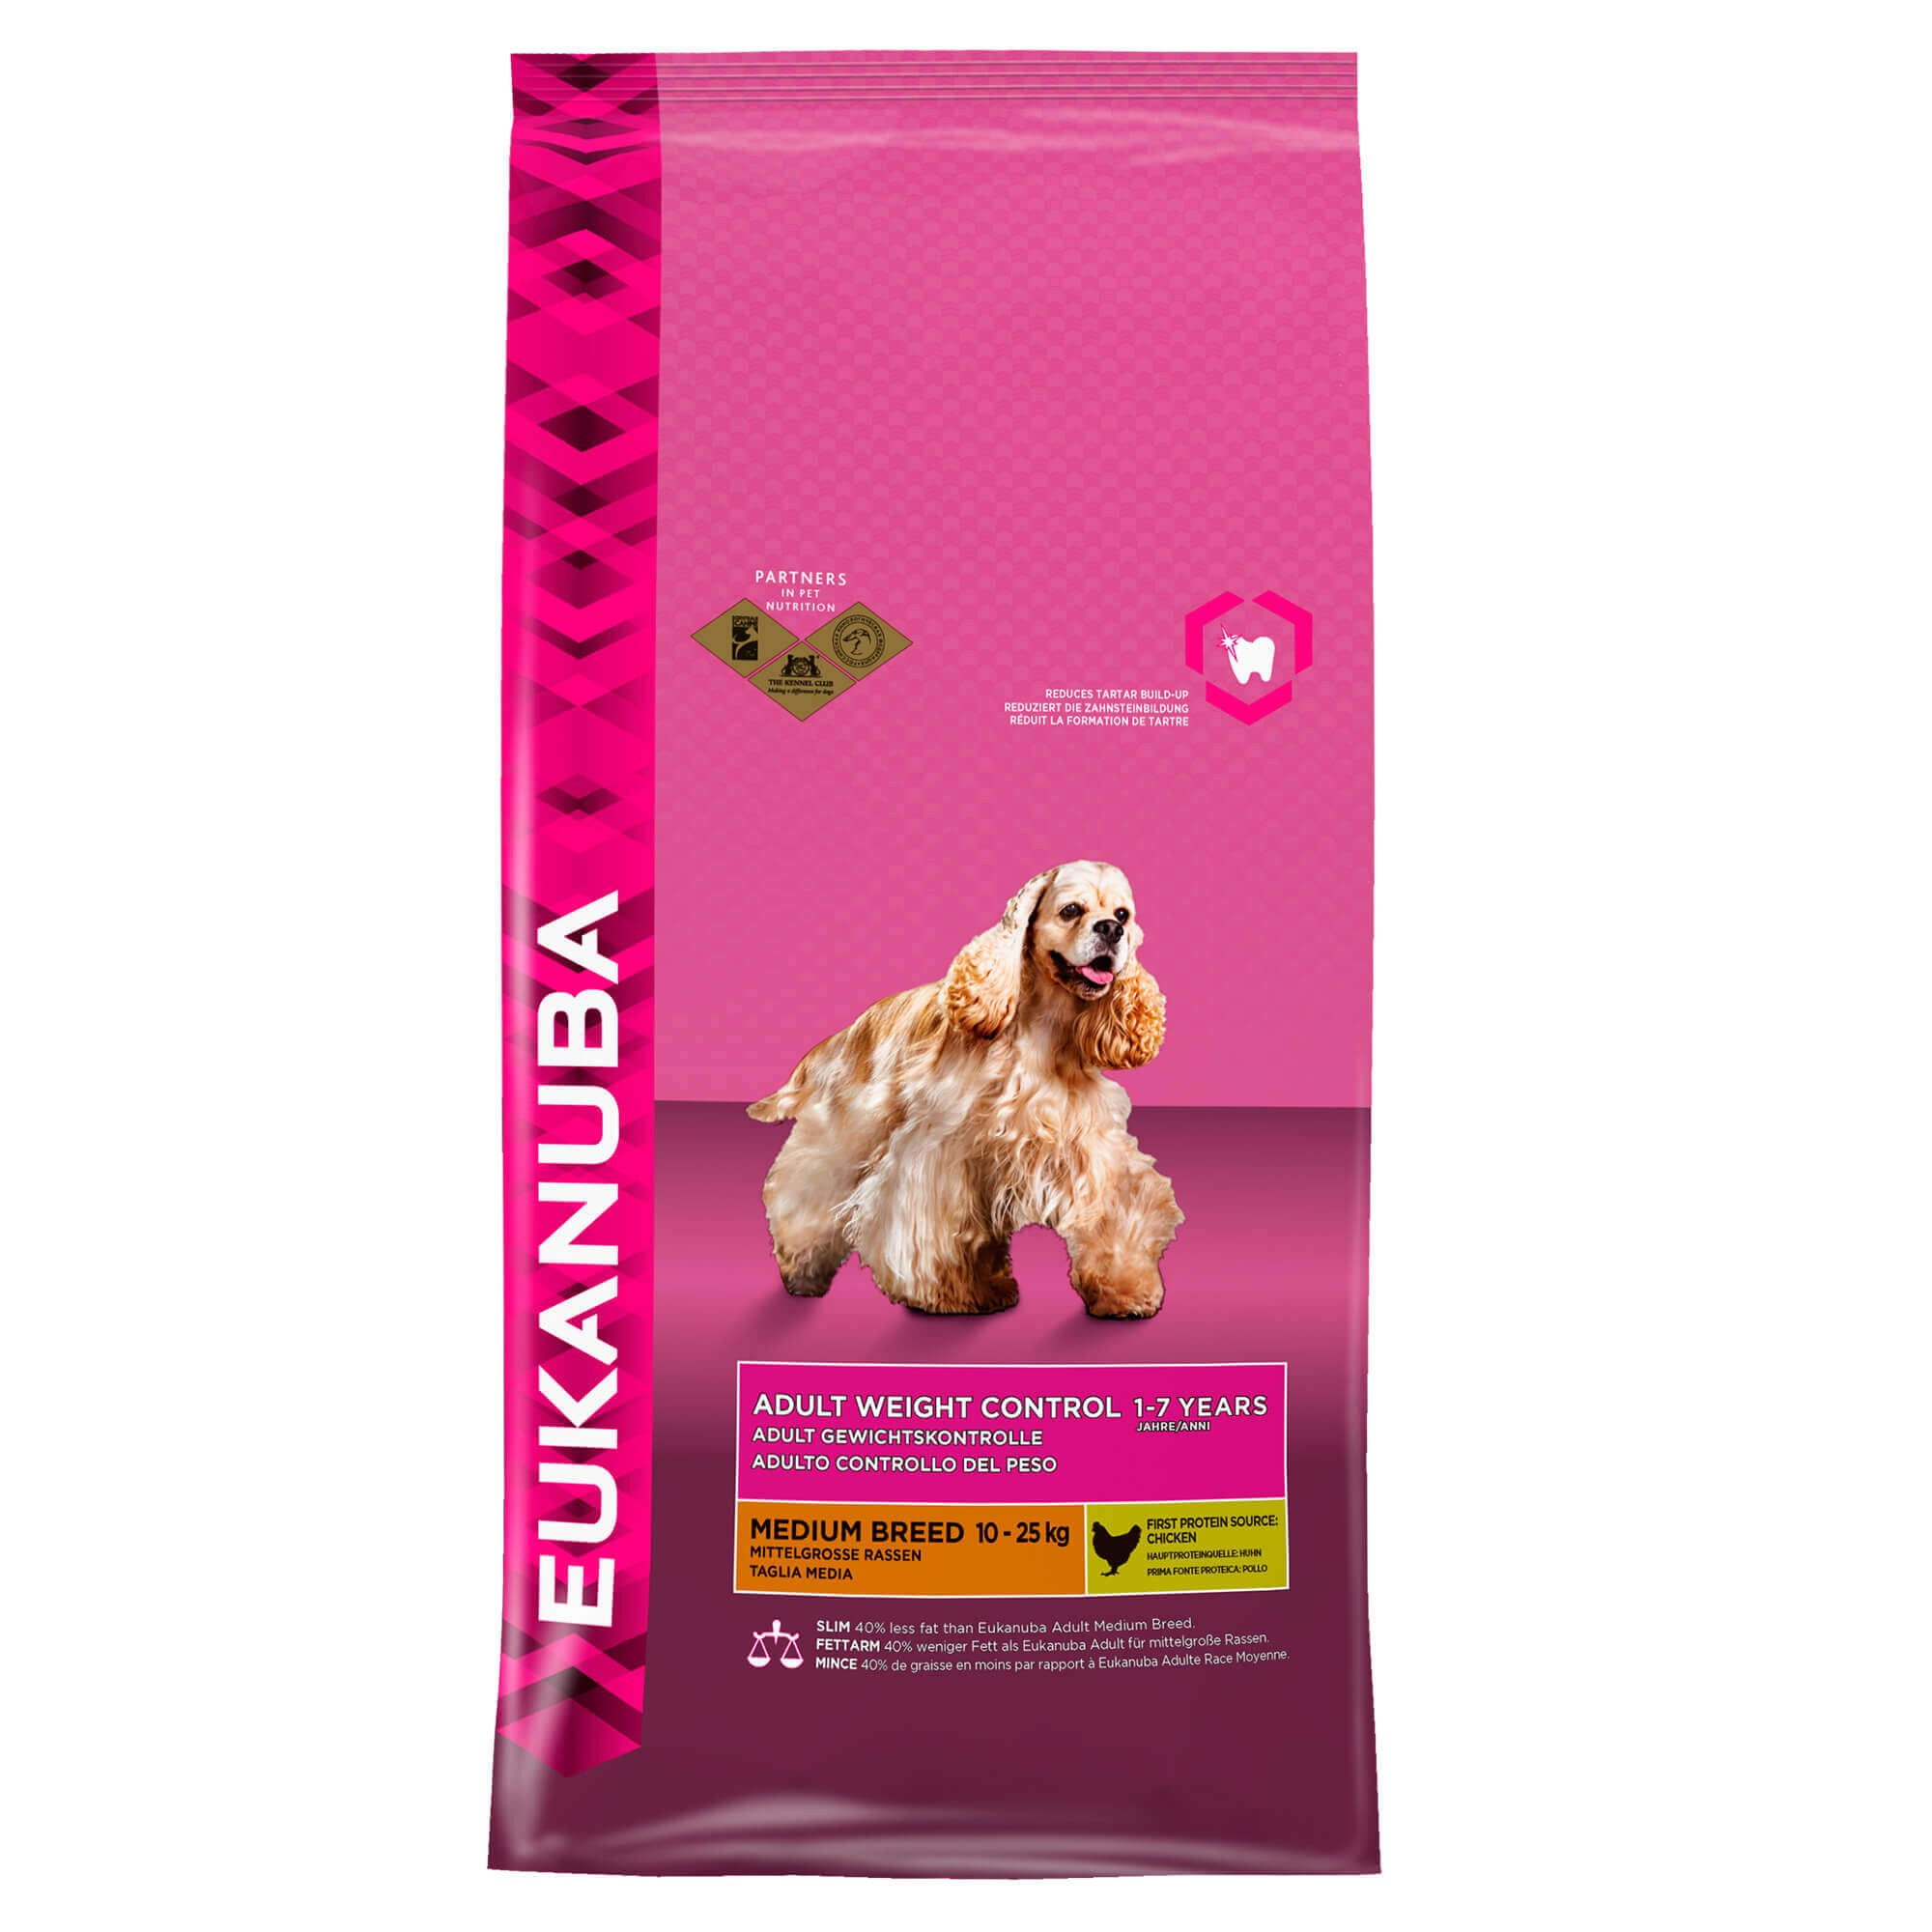 Eukanuba Adult Weight Control Medium Breed hondenvoer